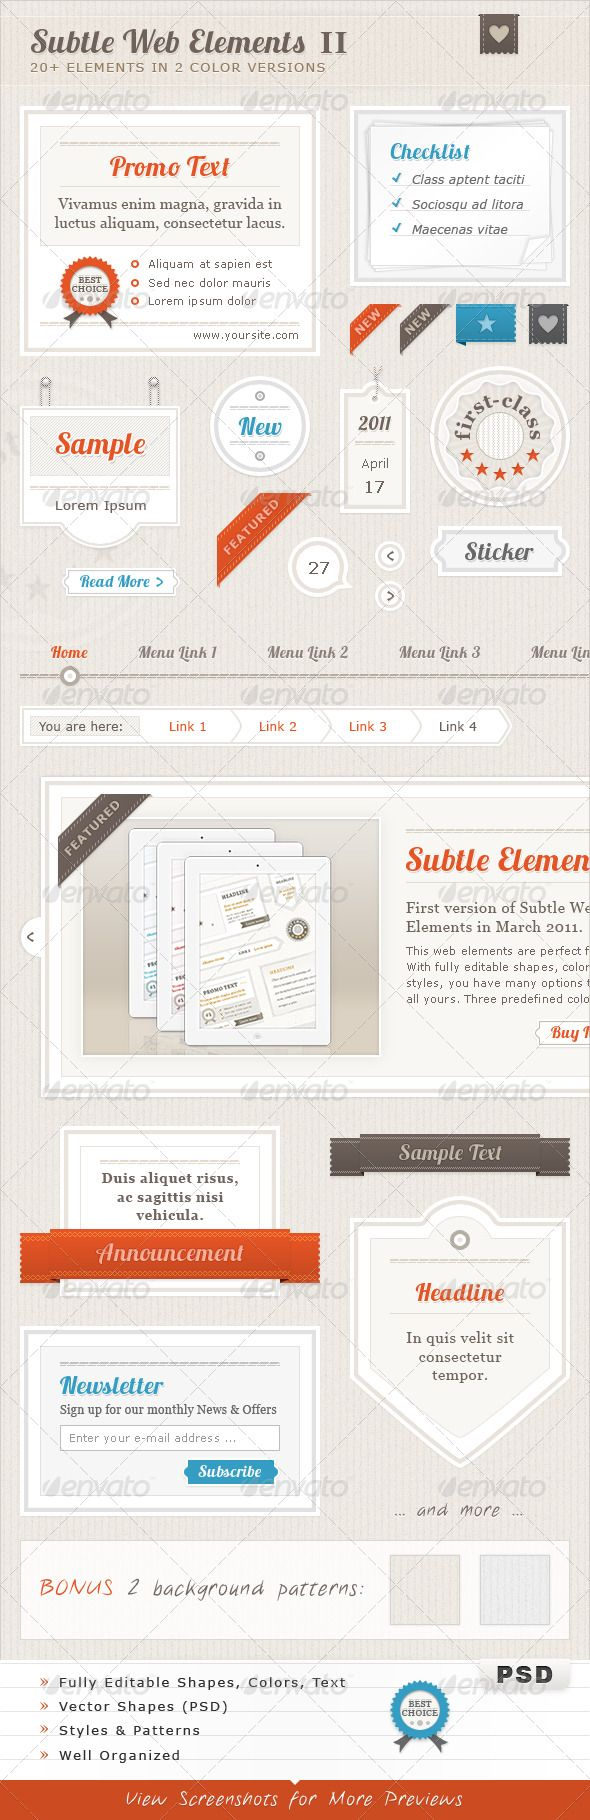 Subtle web elements design